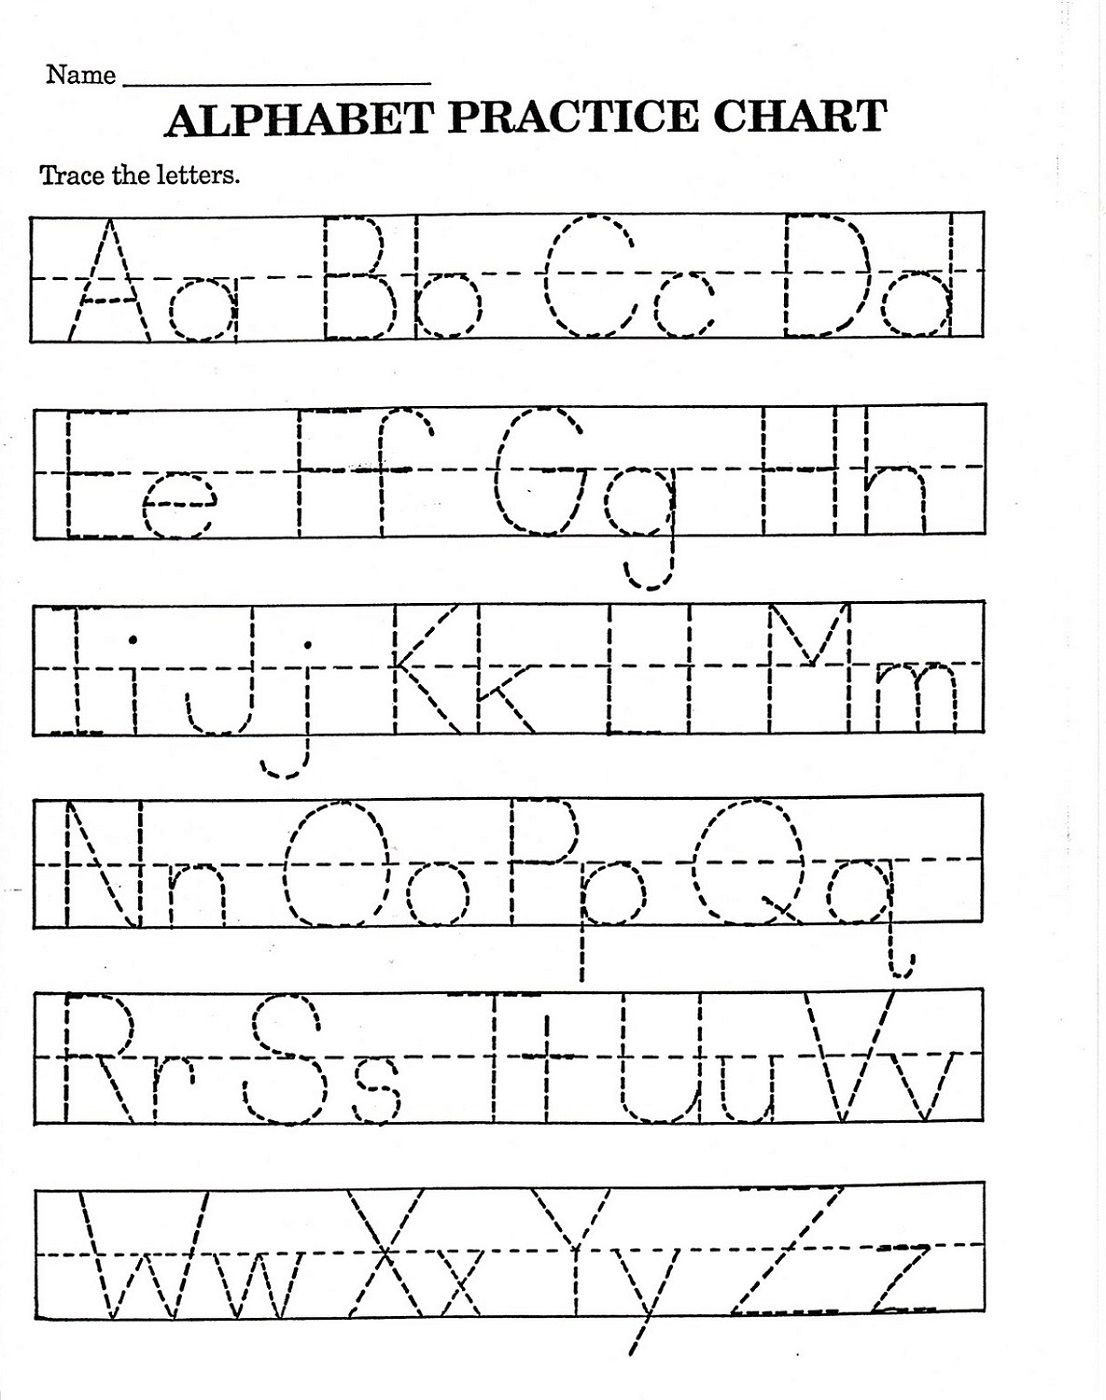 Coloring Book : Tracing Lettersheets Preschool Free Name for Tracing Alphabet Letters Worksheets